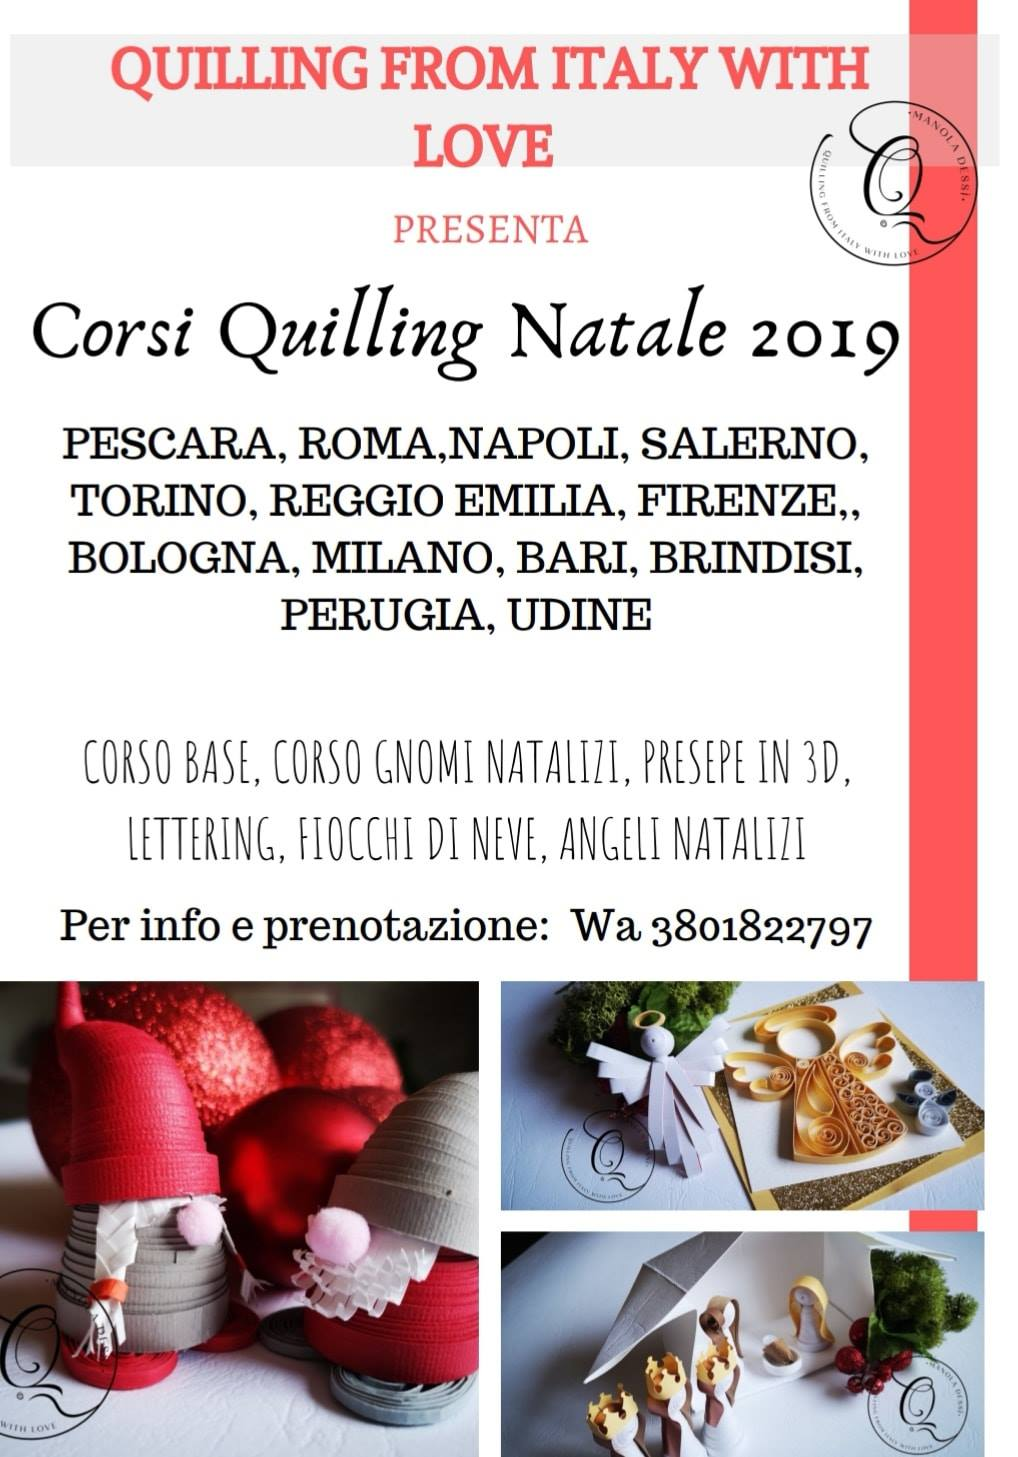 corsi quilling natale 2019